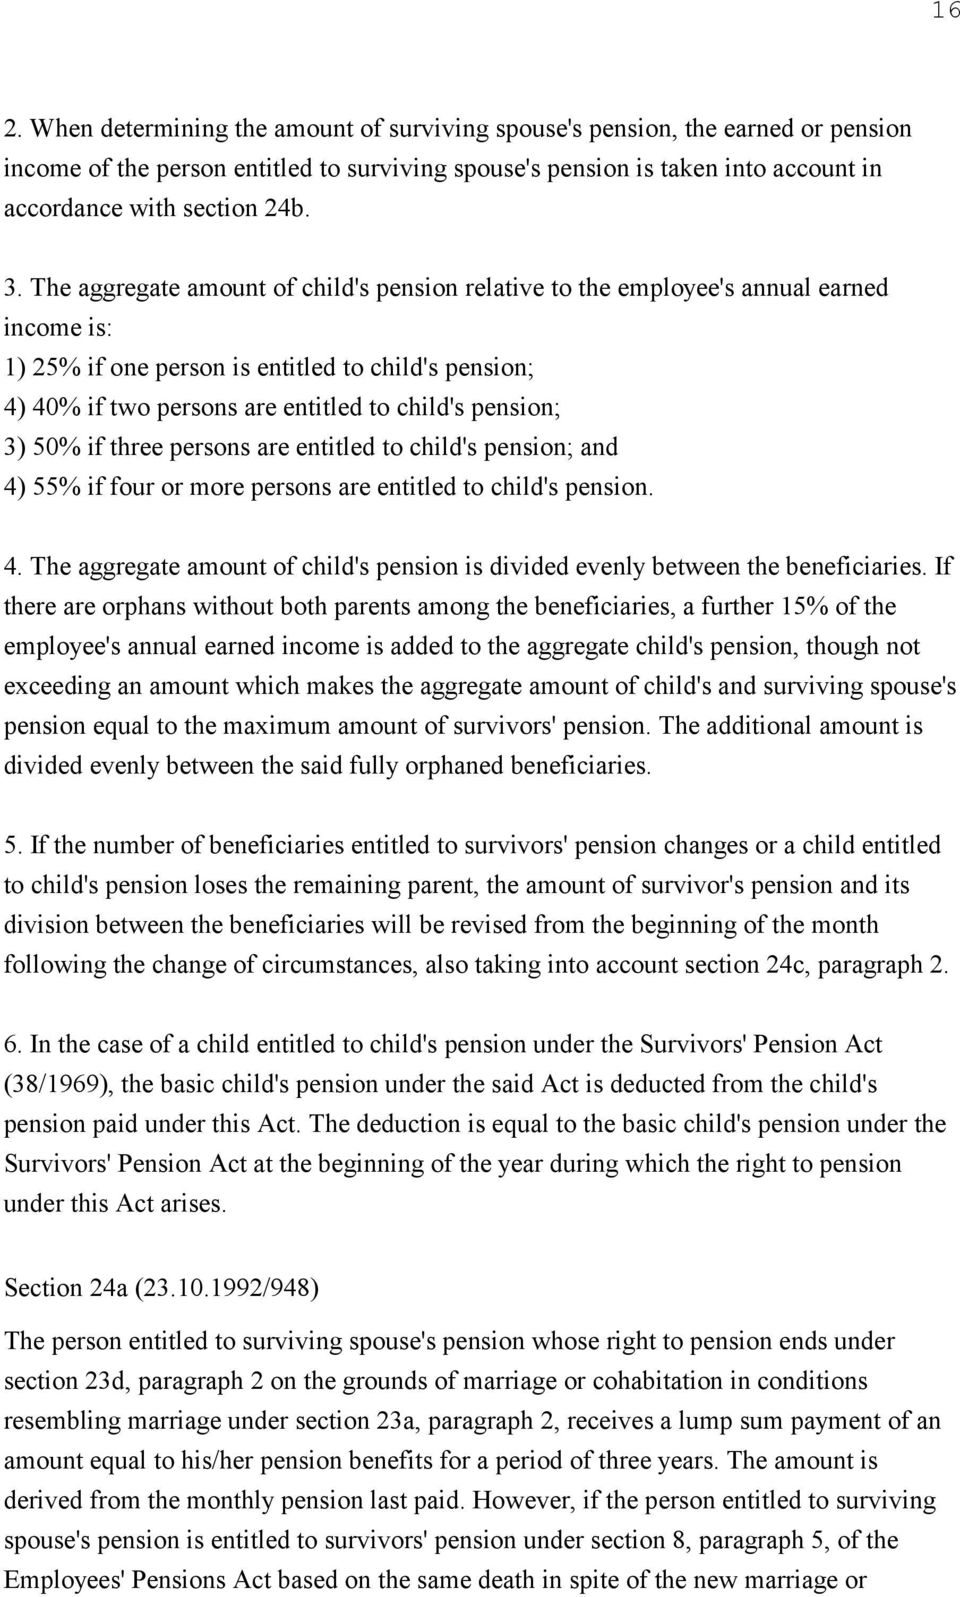 pension; 3) 50% if three persons are entitled to child's pension; and 4) 55% if four or more persons are entitled to child's pension. 4. The aggregate amount of child's pension is divided evenly between the beneficiaries.